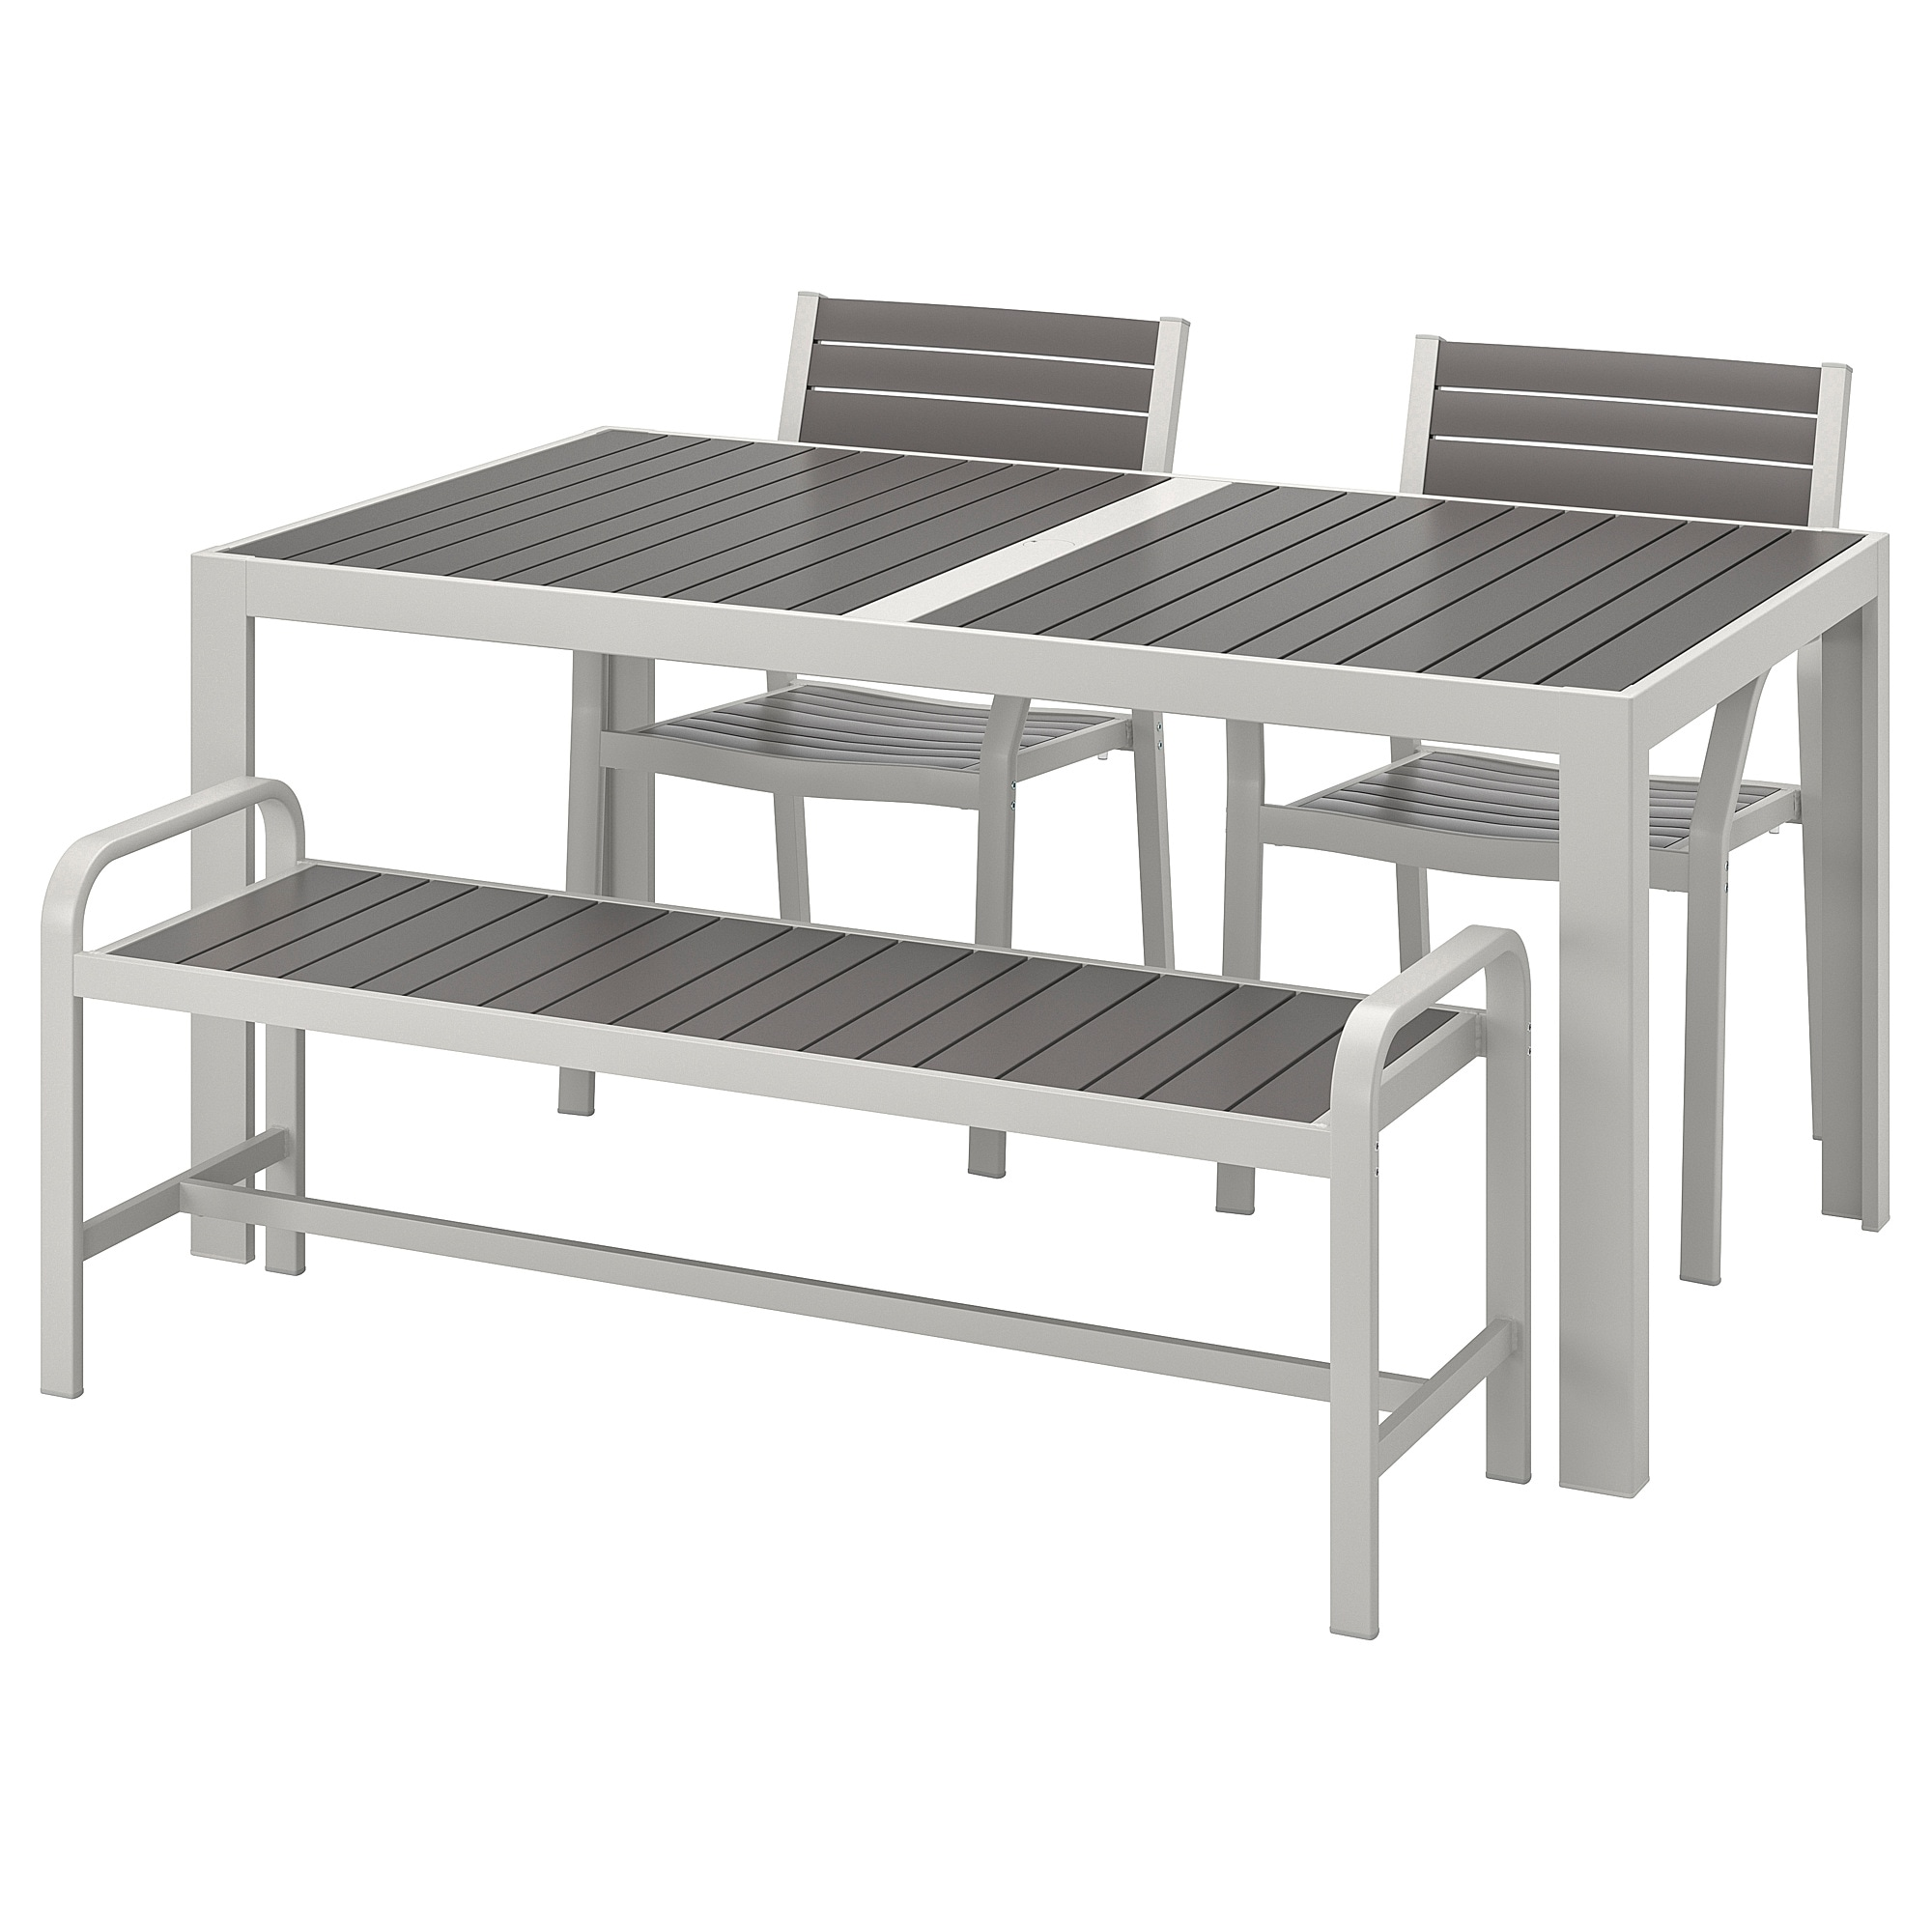 Groovy Table 2 Chrsw Armr Bench Outdoor Sjalland Dark Grey Forskolin Free Trial Chair Design Images Forskolin Free Trialorg